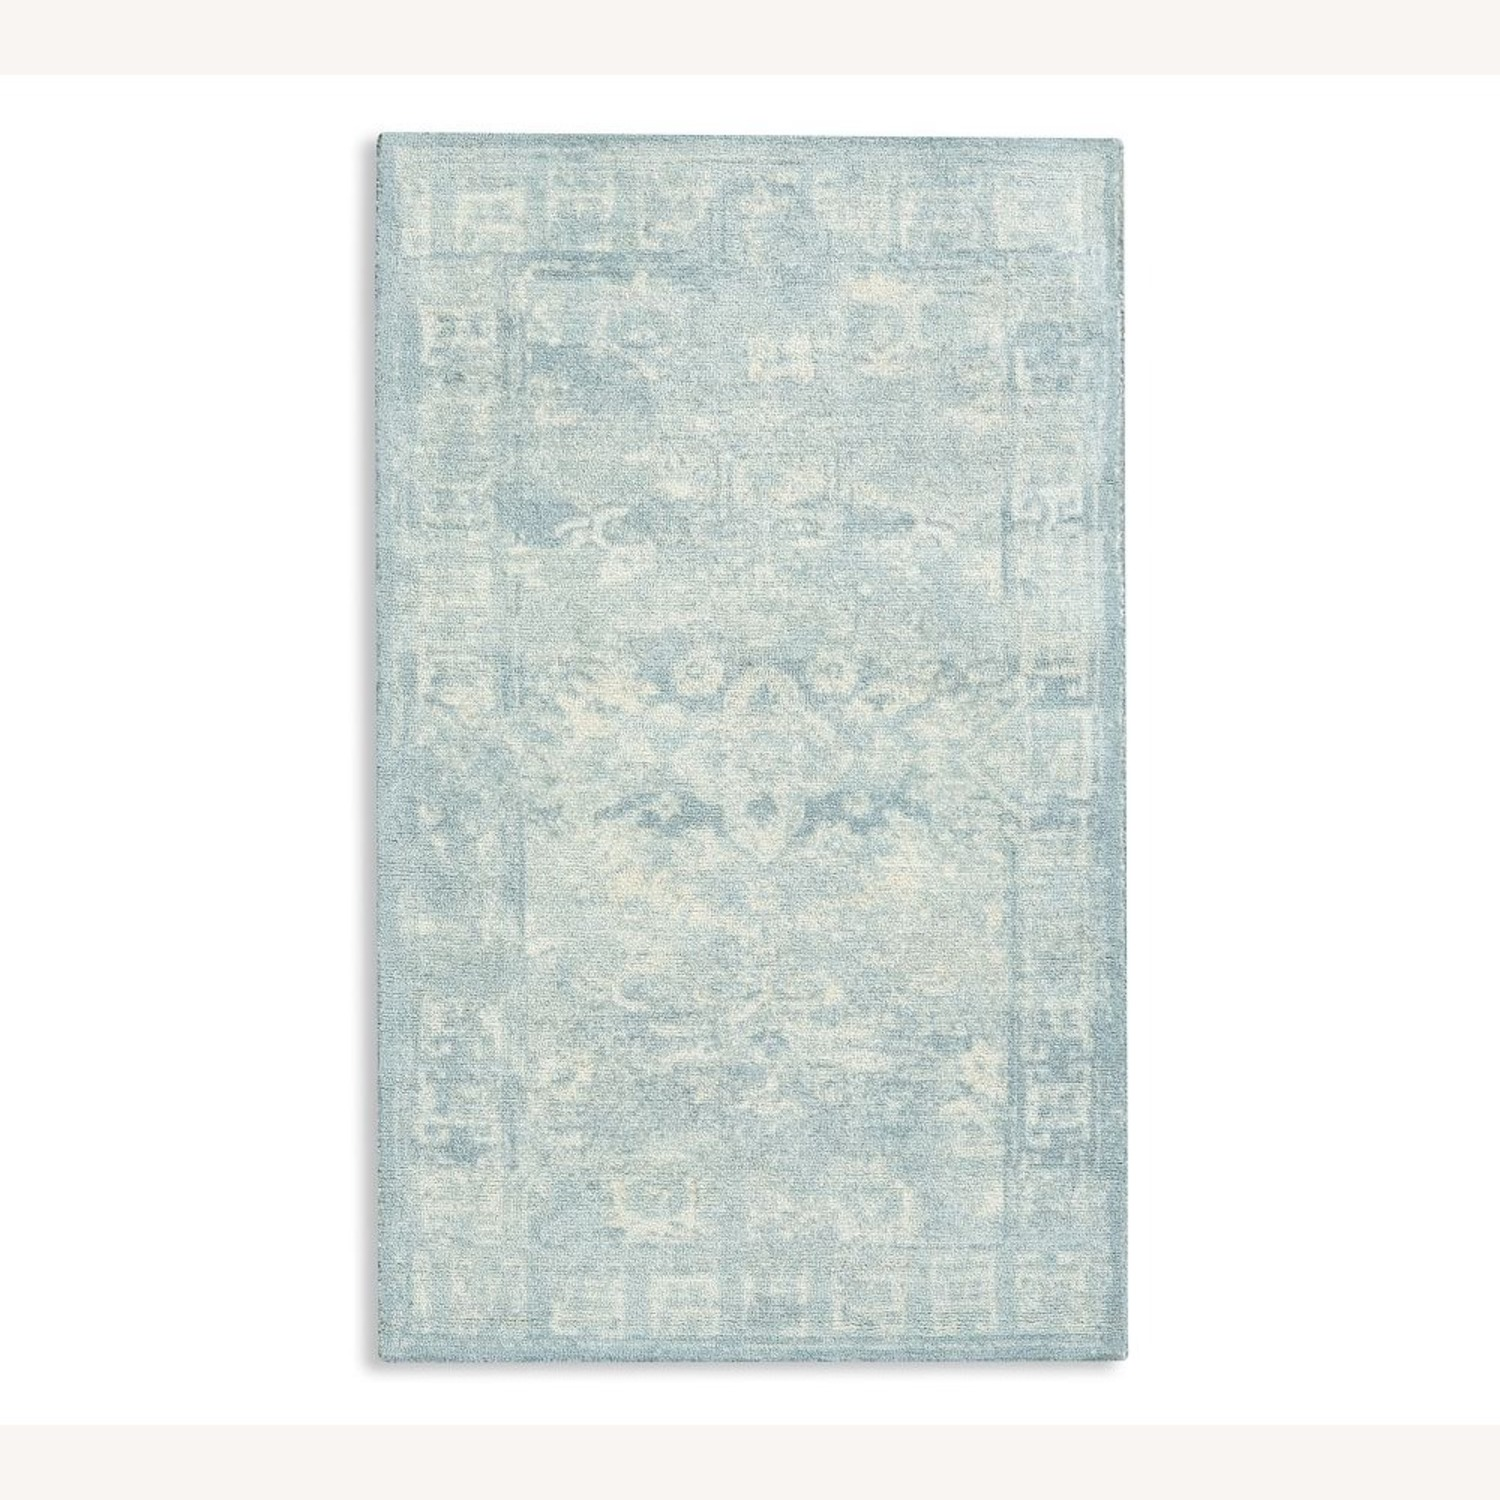 Pottery Barn Gabrielle Handtufted Wool Rug , 3 x 5 - image-2